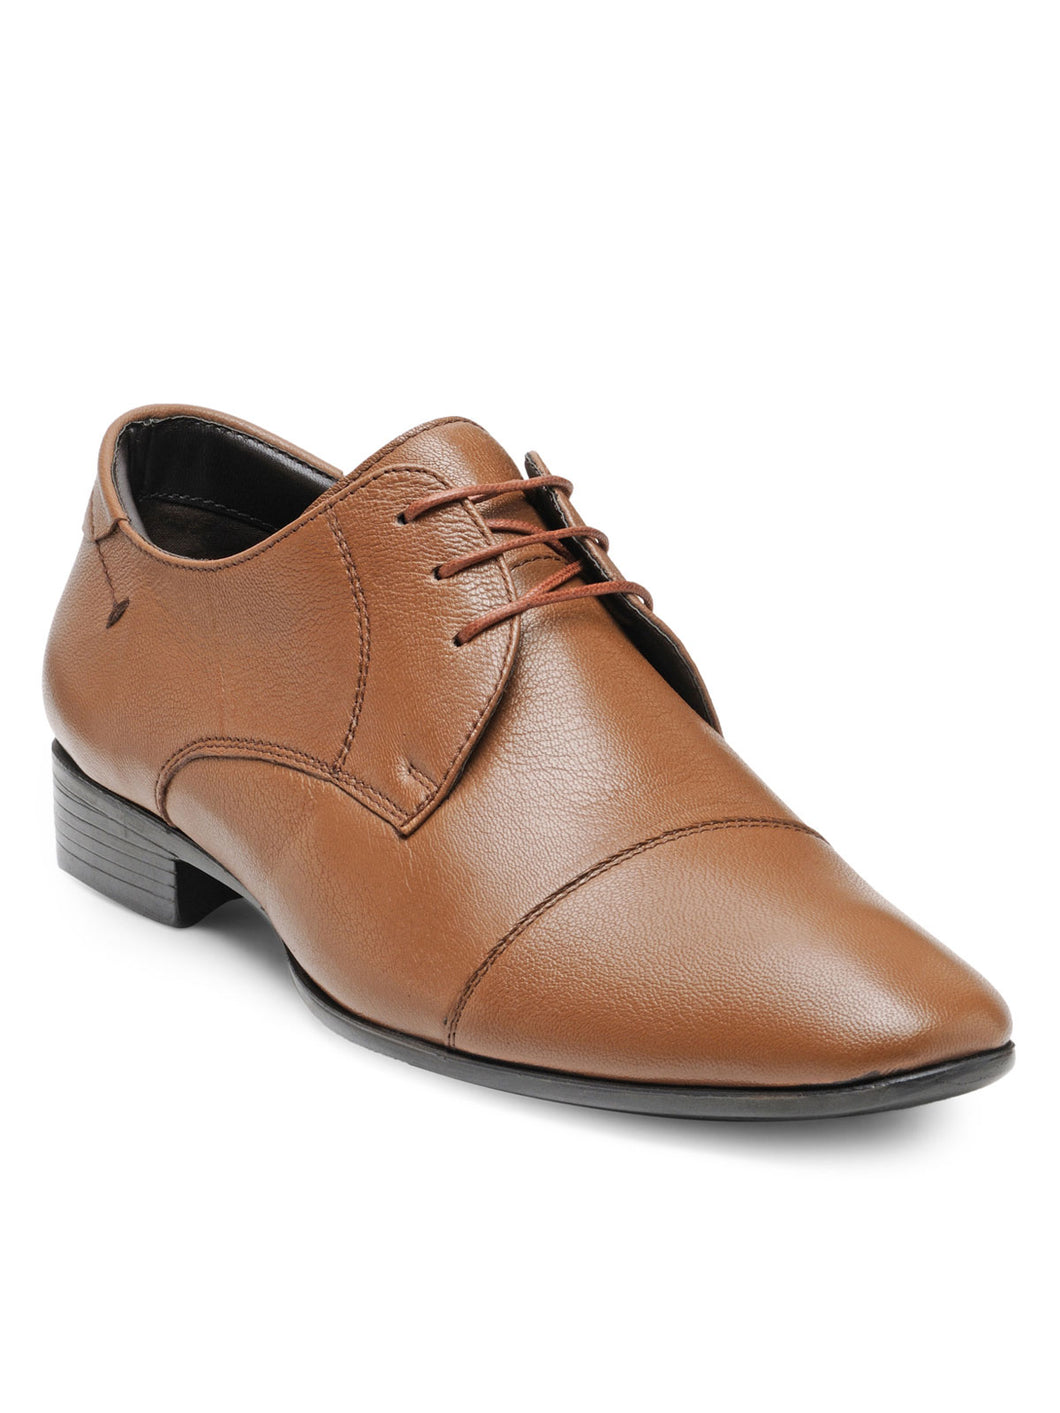 Teakwood Leather Men's Tan Derby Shoes